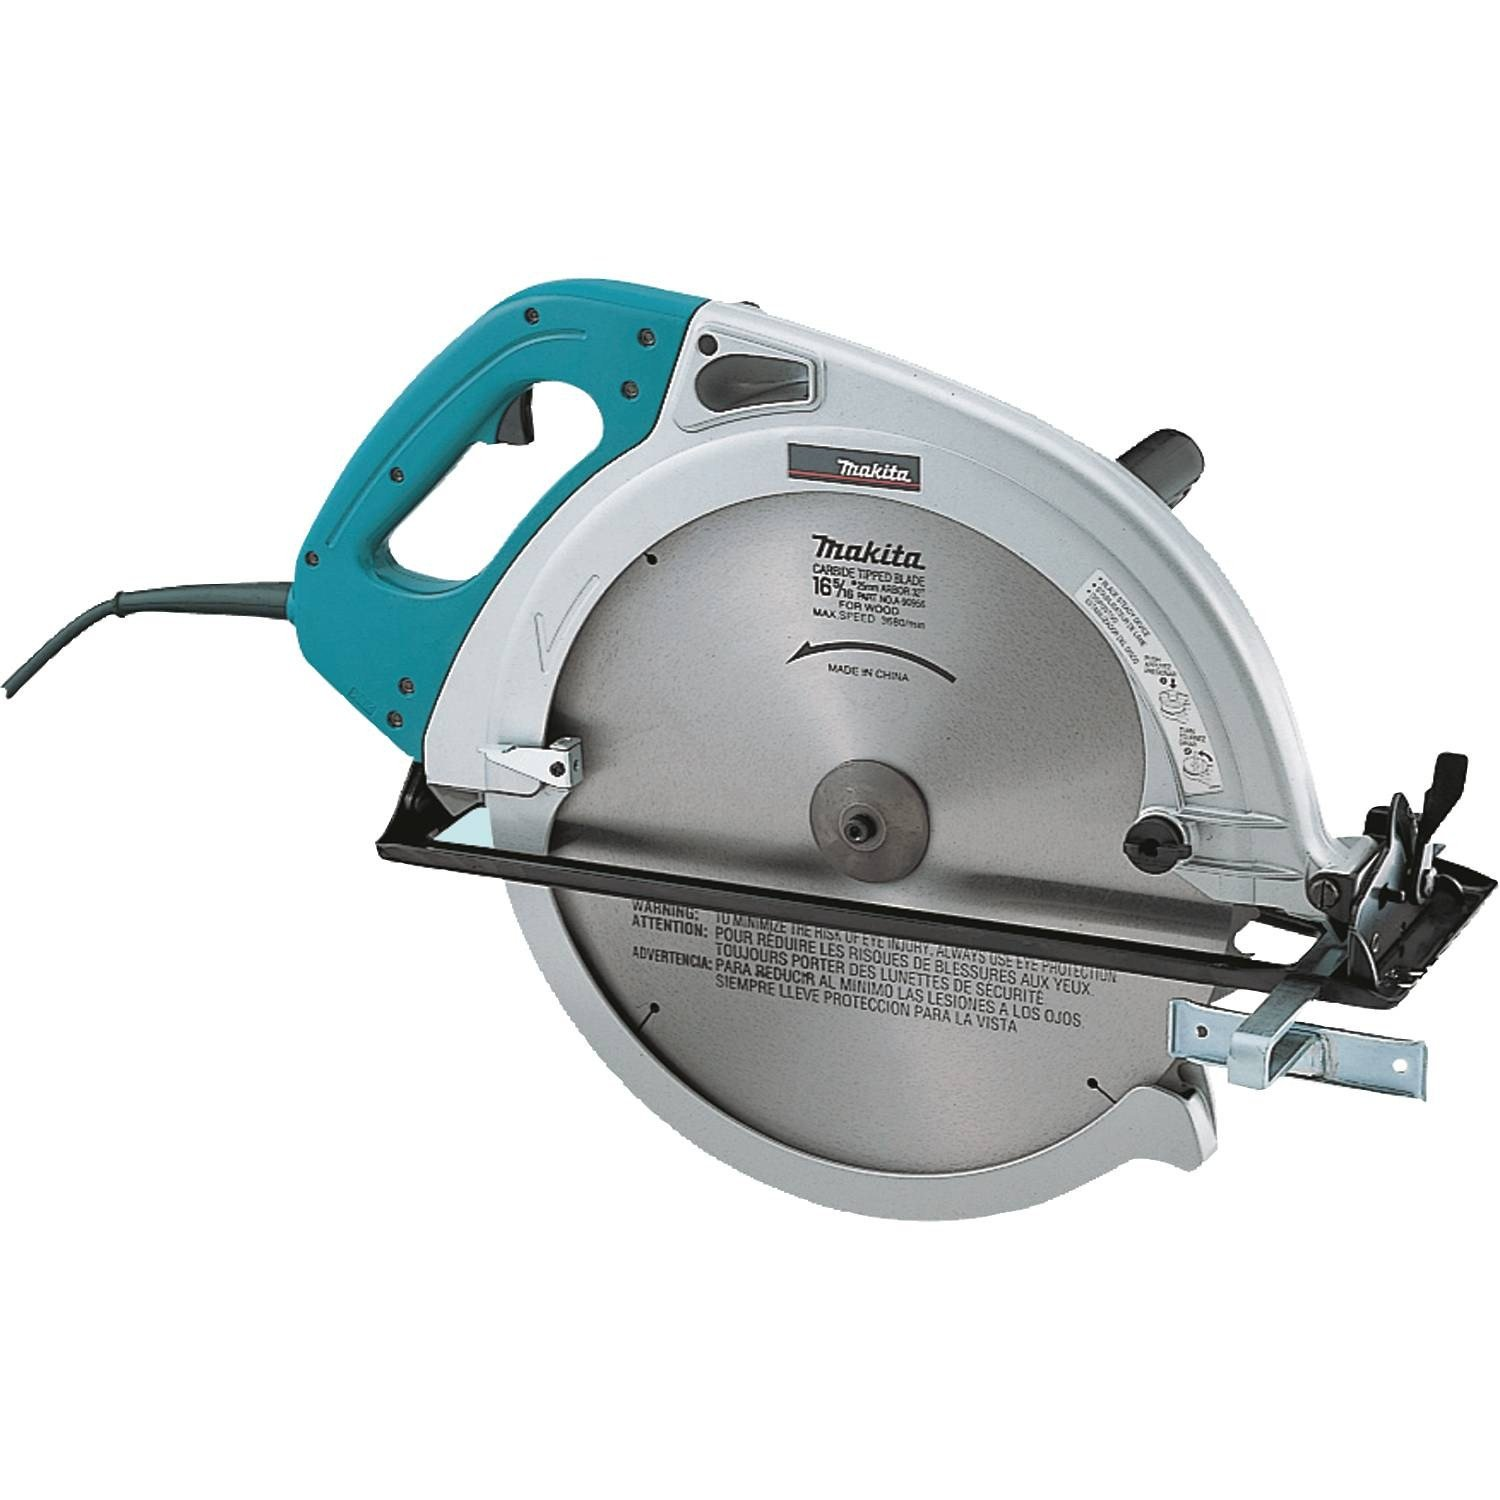 Makita 5402NA Circular Saw (16 5/16-Inches) Review 1